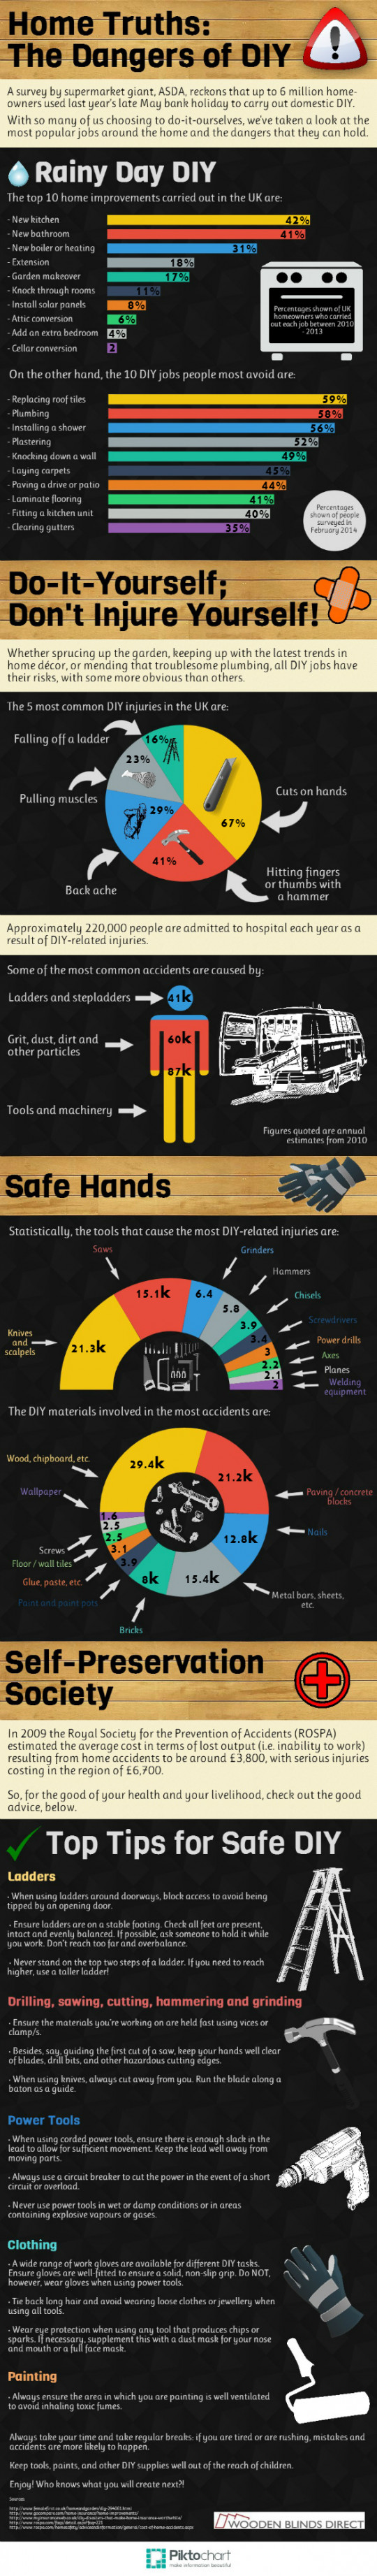 Home Truths: The Dangers of DIY